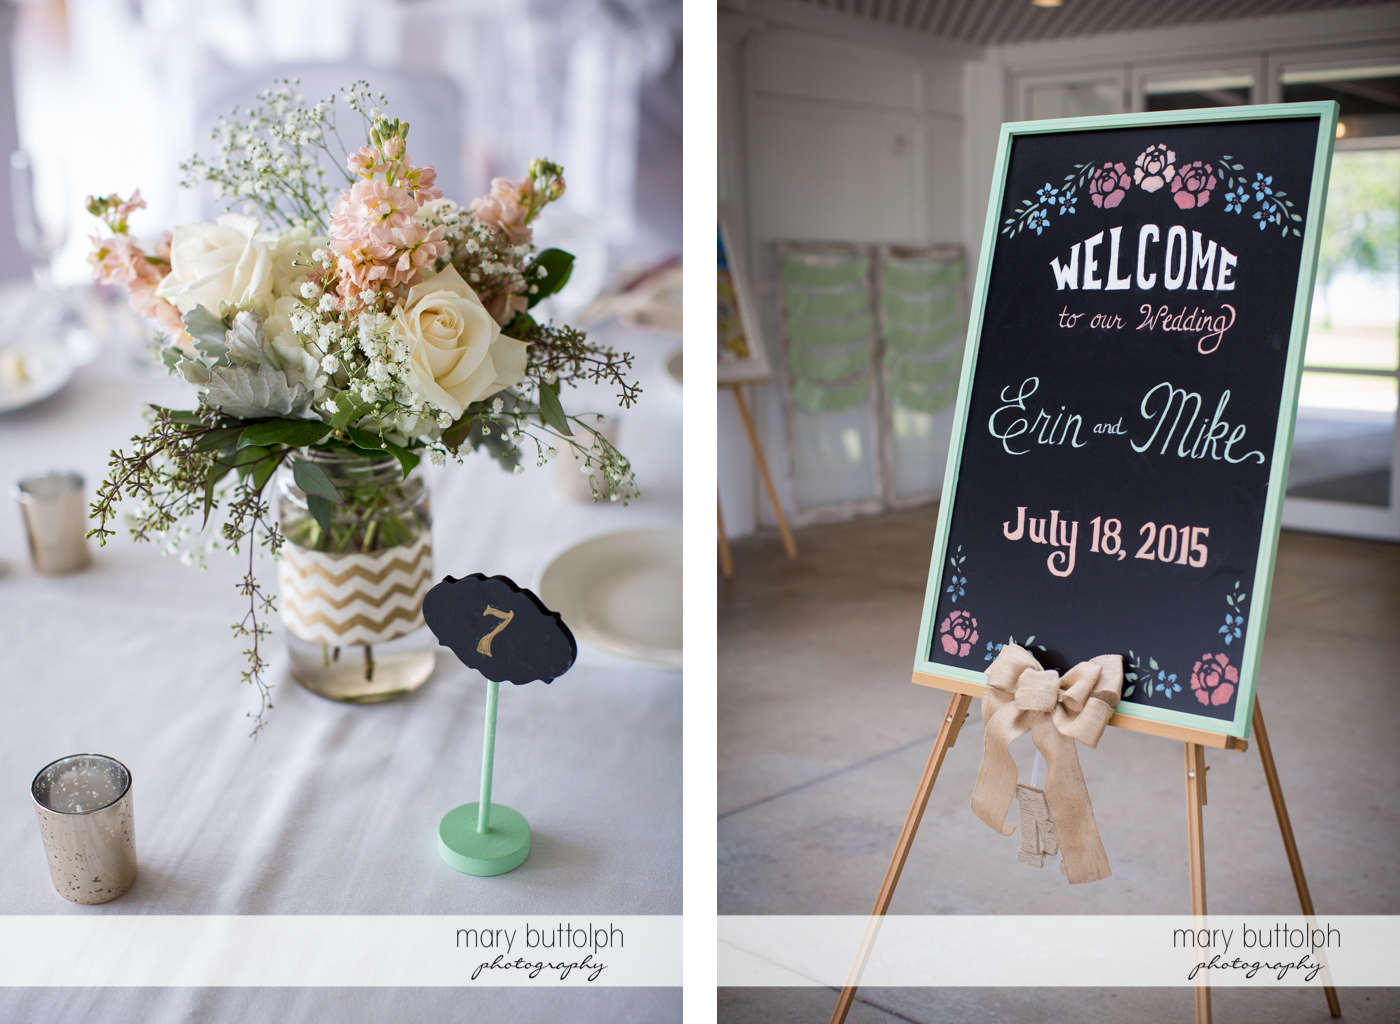 Flowers bring beauty to the wedding venue while a blackboard welcomes the newlyweds at Emerson Park Pavilion Wedding